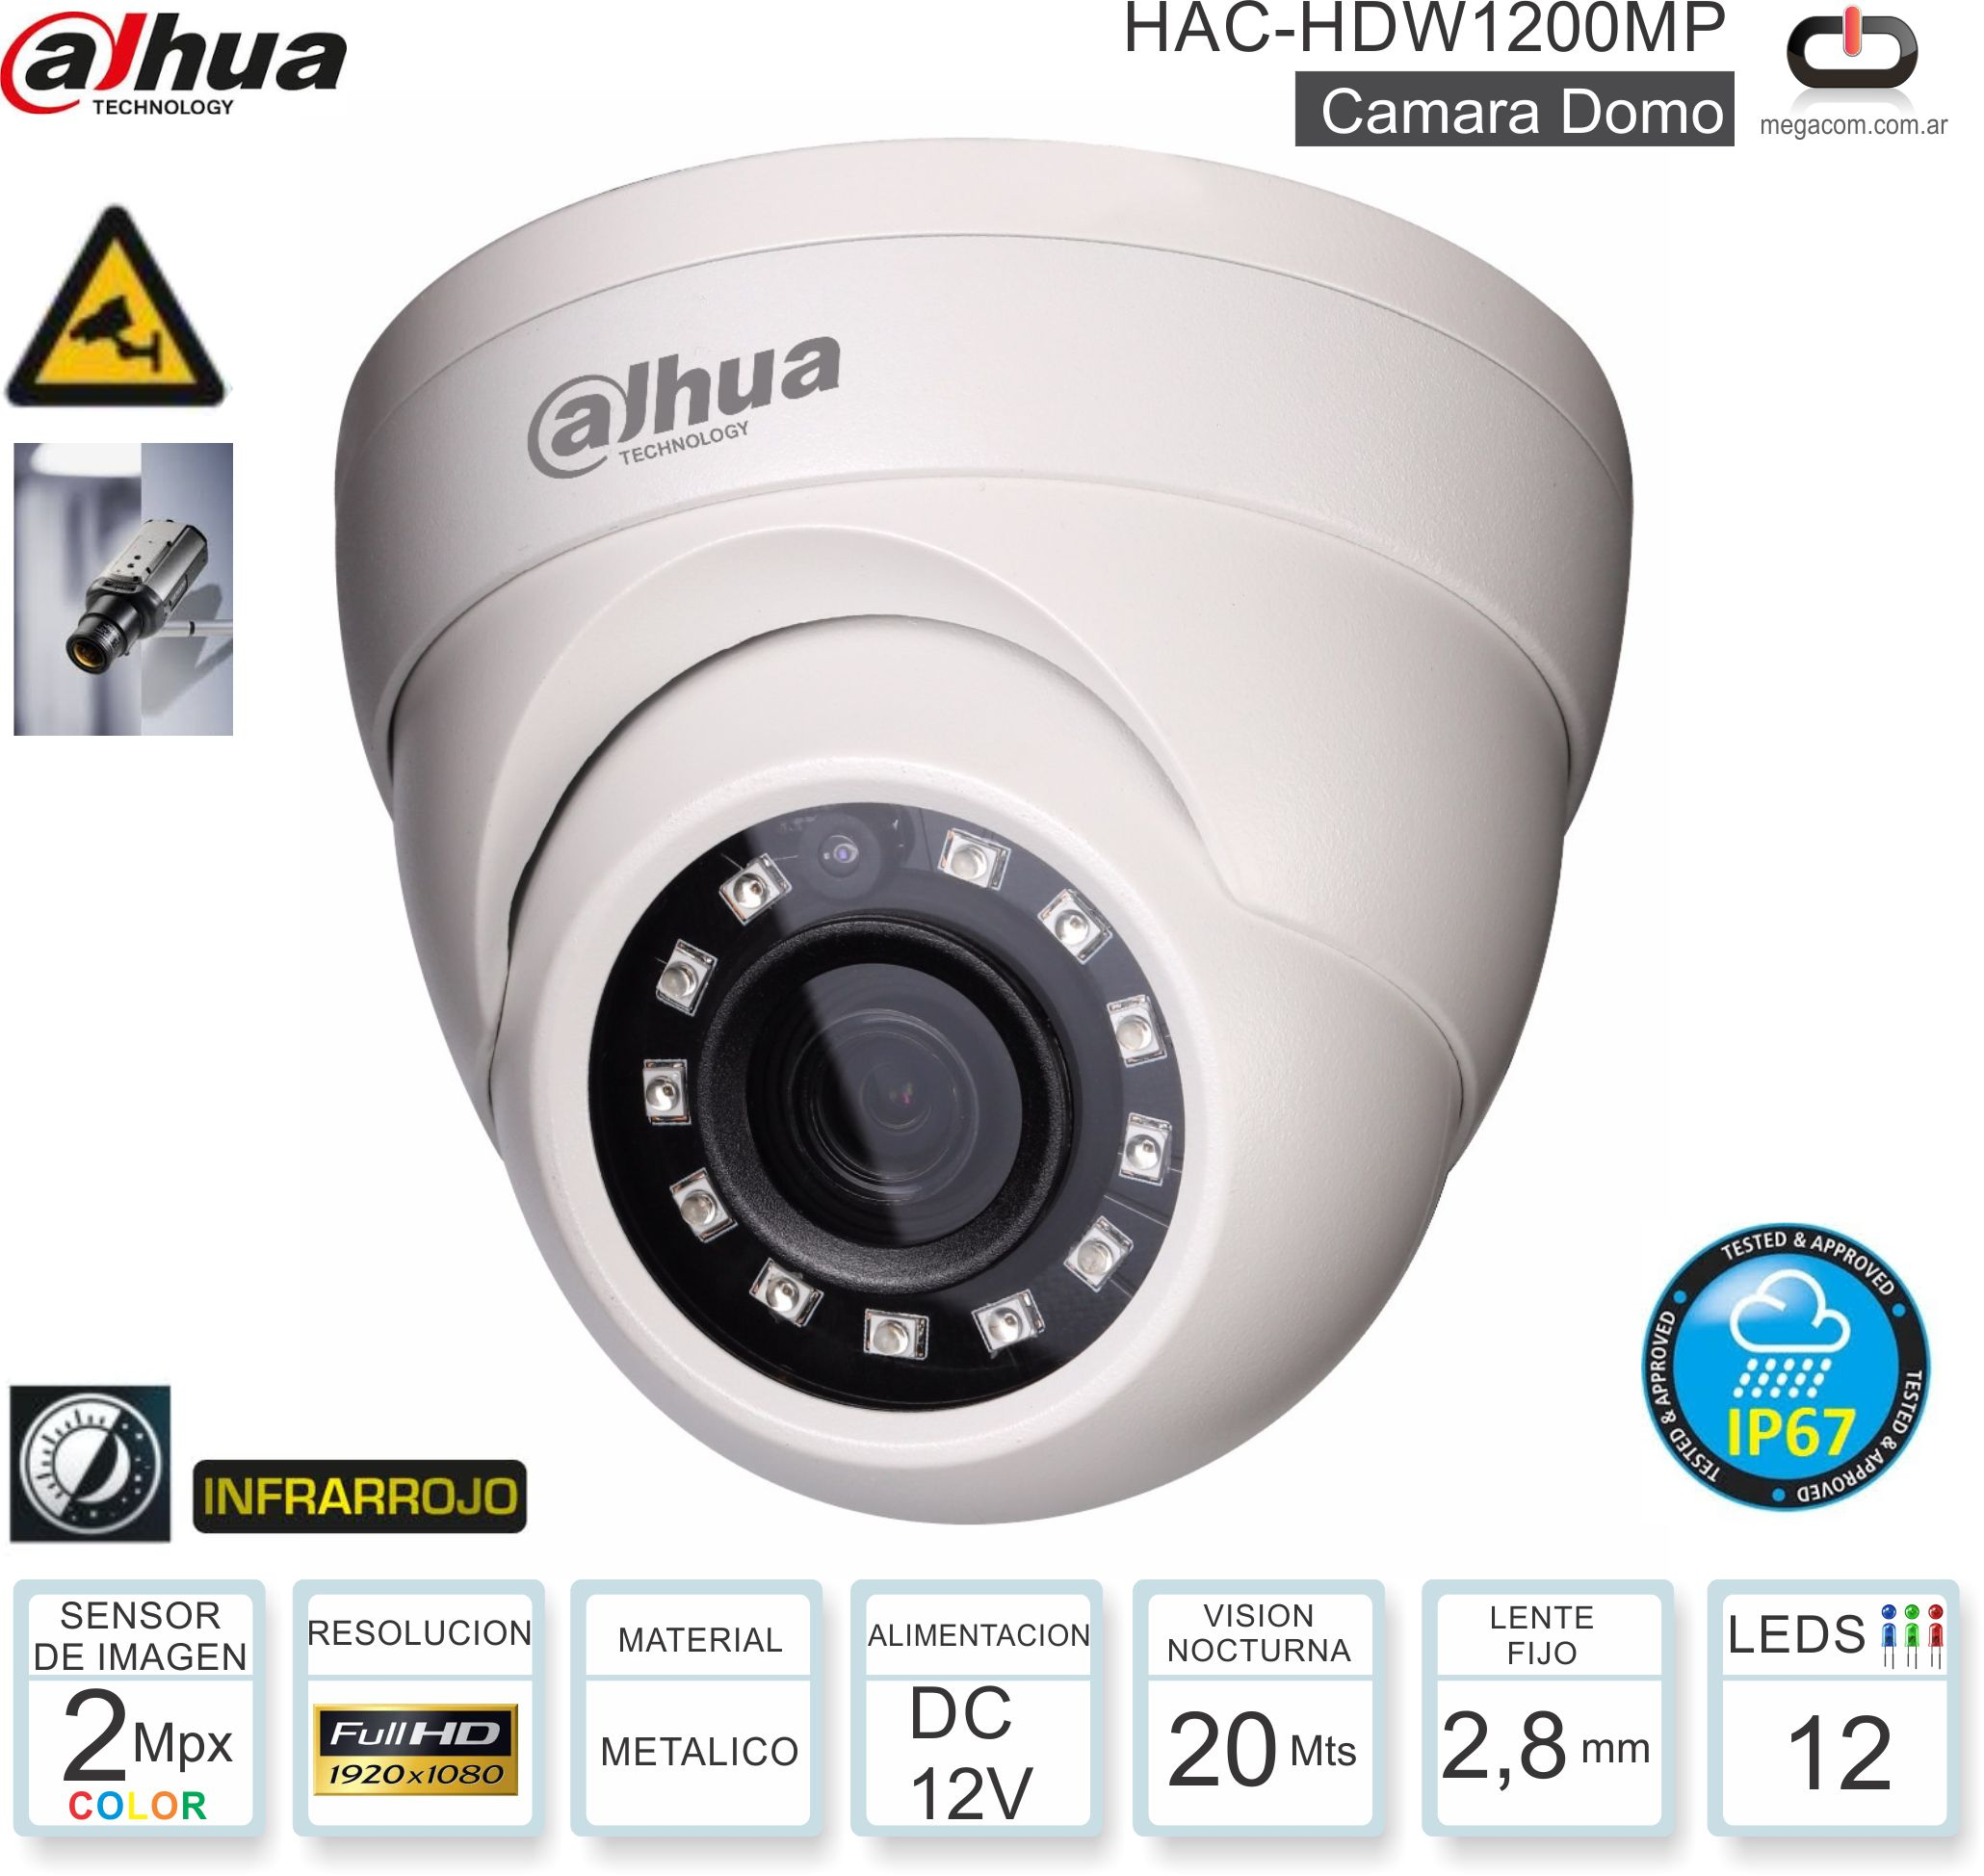 Cam Domo 2Mp Met DAHUA HAC-HDW1200MP